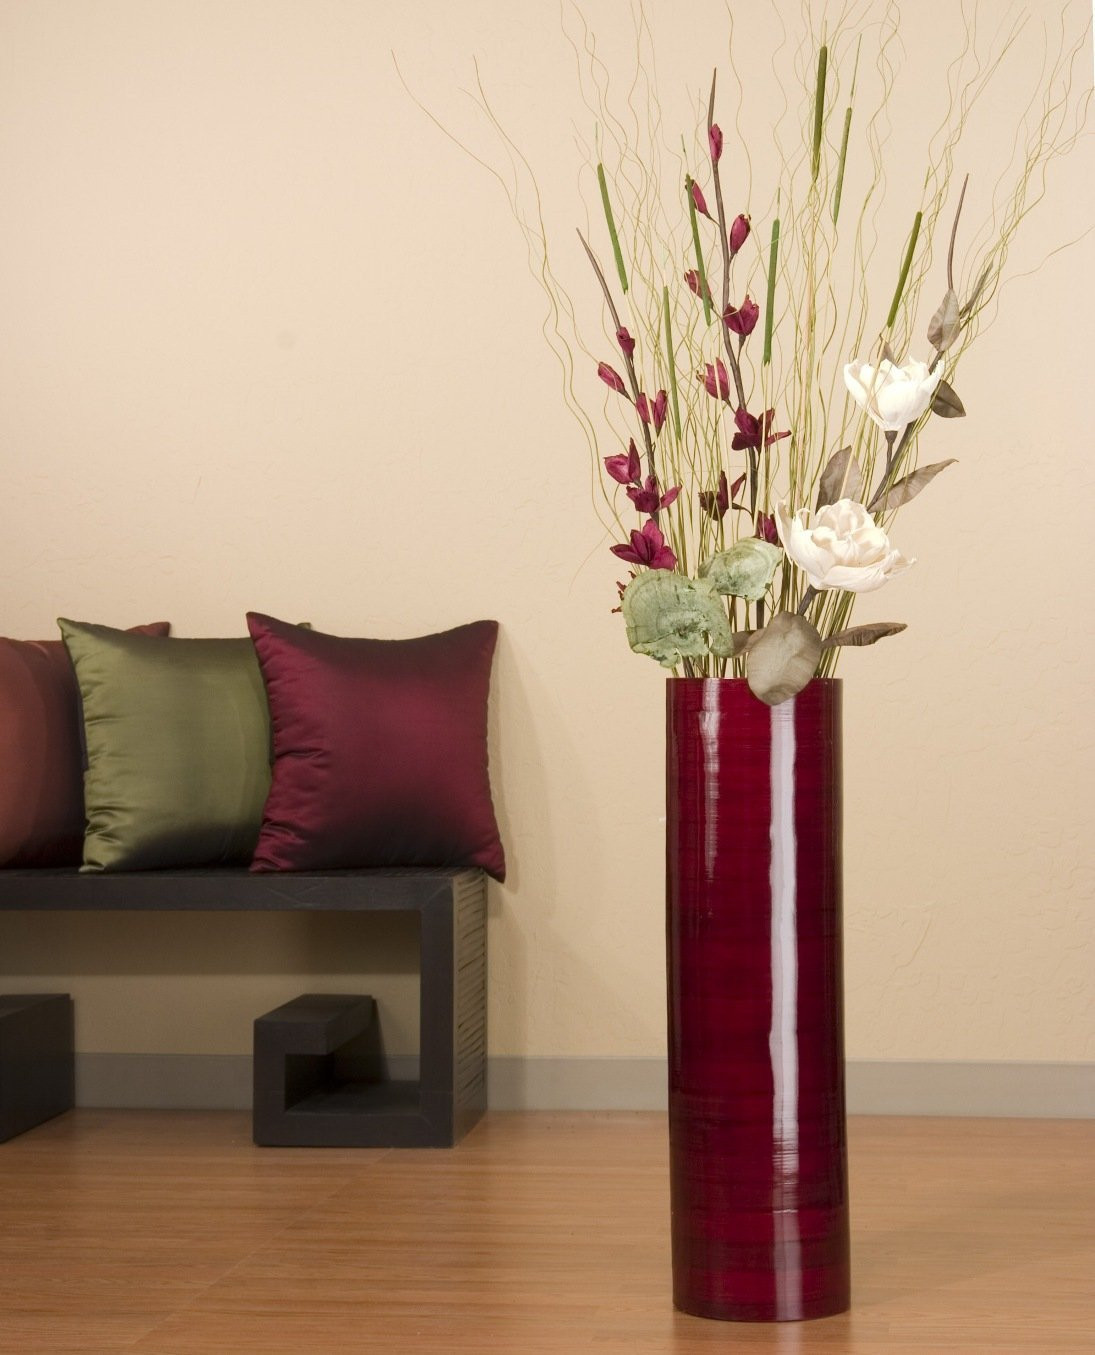 20 inch trumpet vases of 20 unique very tall decorative vases bogekompresorturkiye com throughout glamorous tall vase decoration ideas 20 contemporary floor vases 40 inch lamps dining room o